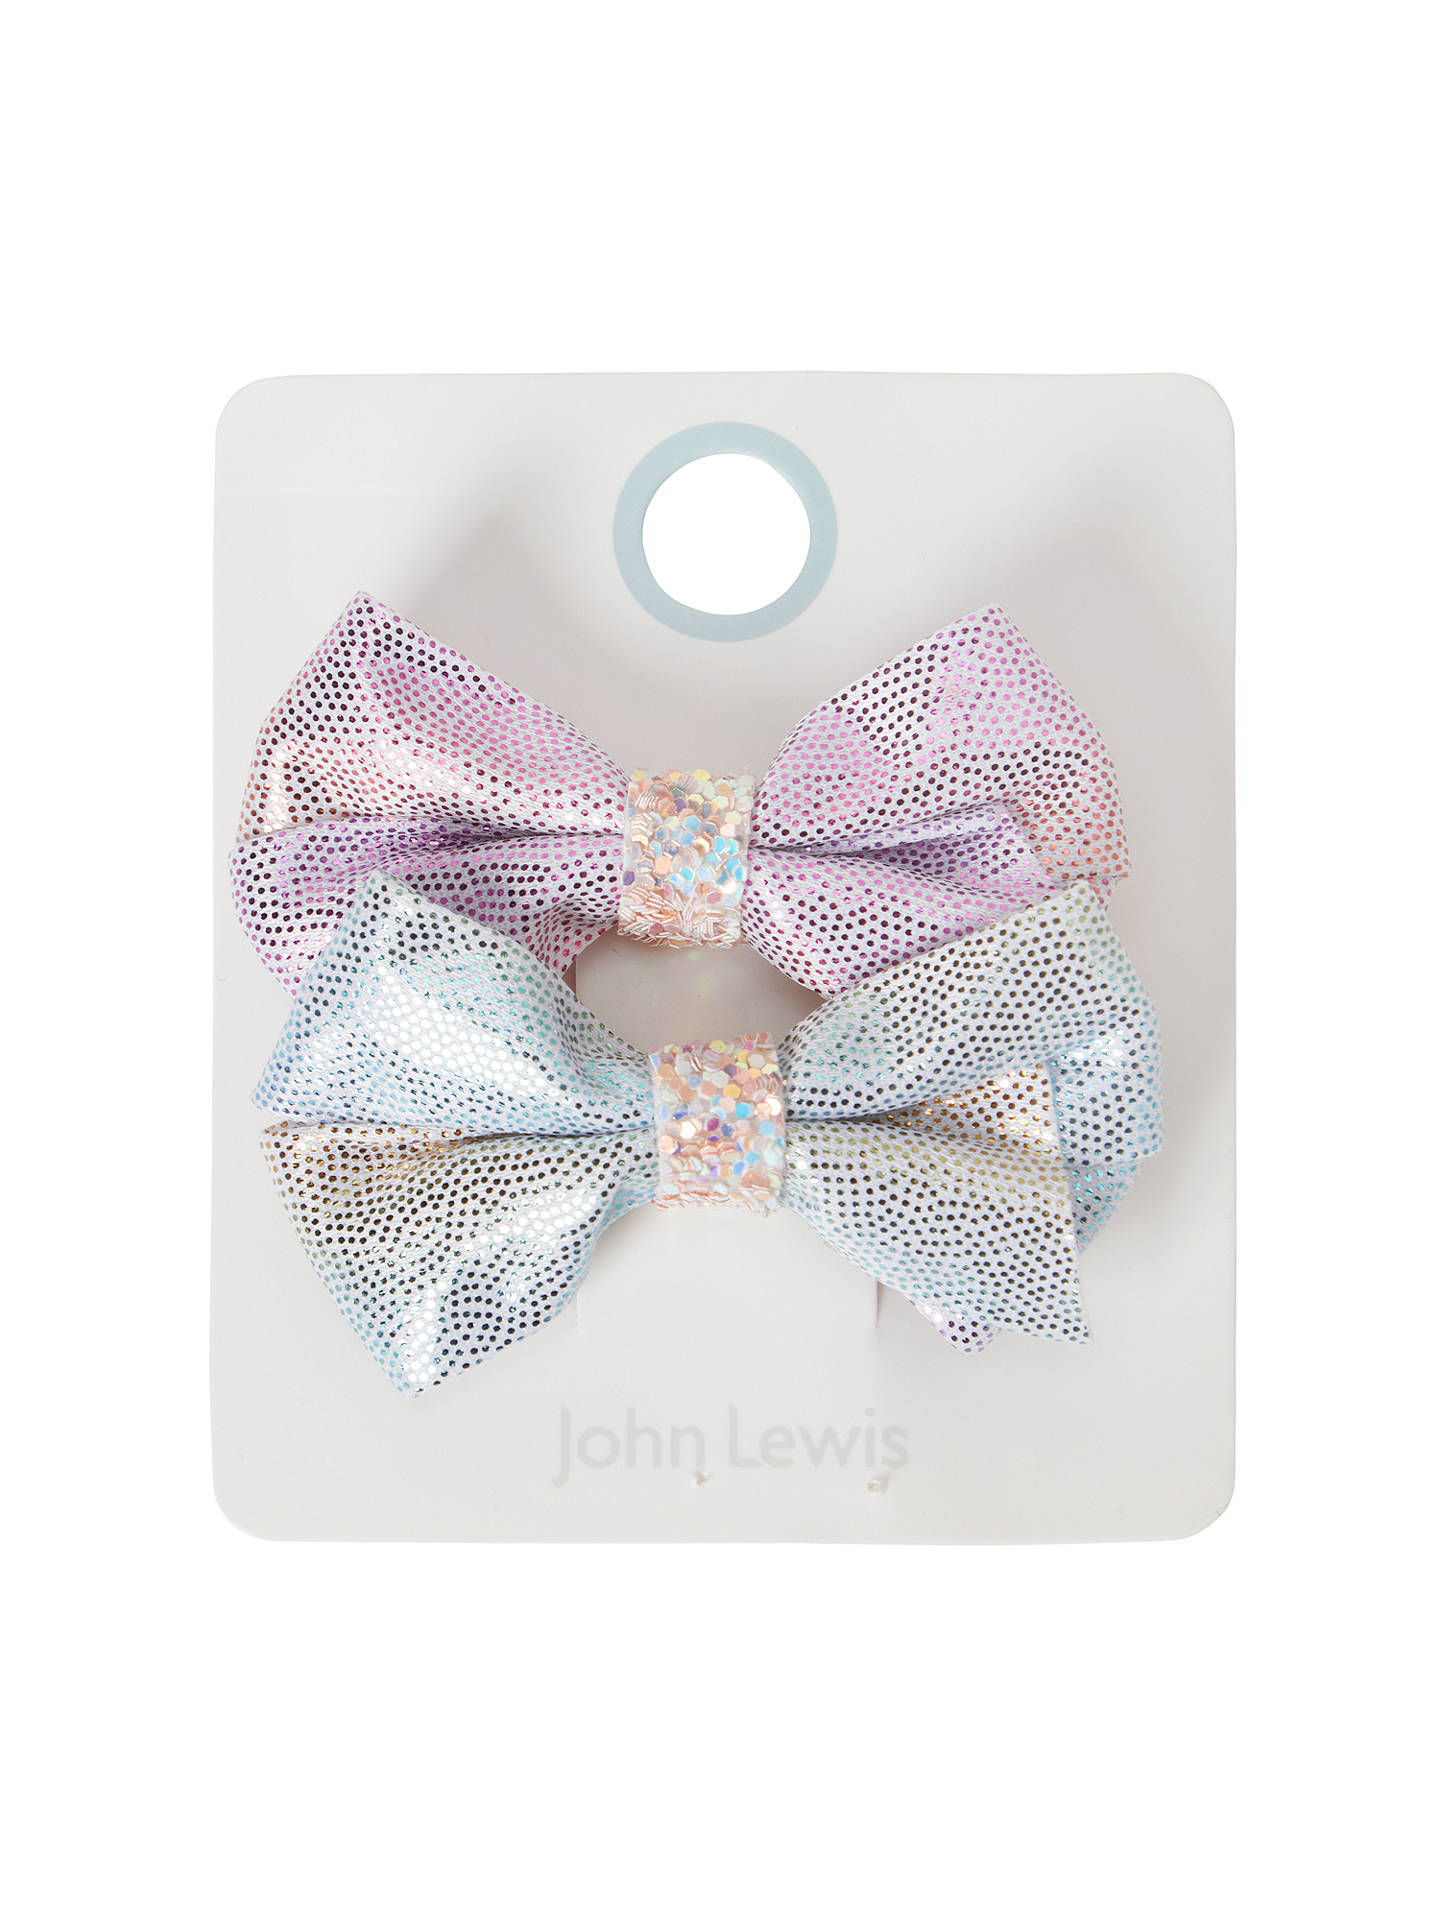 BuyJohn Lewis & Partners Girls' Sparkly Unicorn Bow Hair Clips, Pack of 2, Pink/Blue Online at johnlewis.com